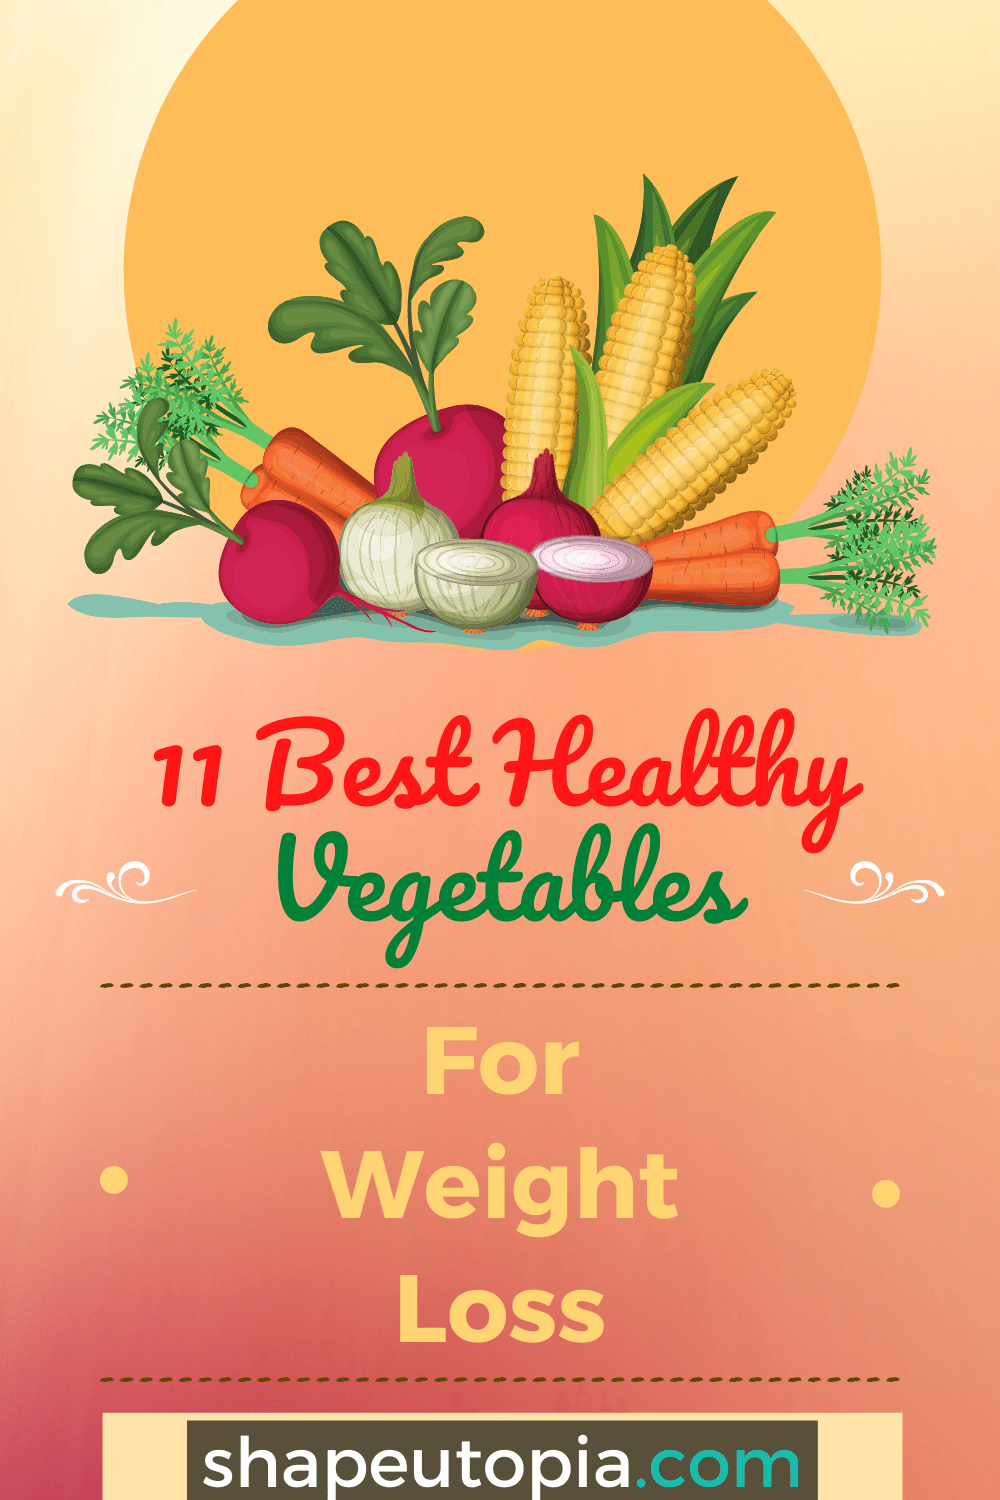 11 Best Healthy Vegetables For Weight Loss Now